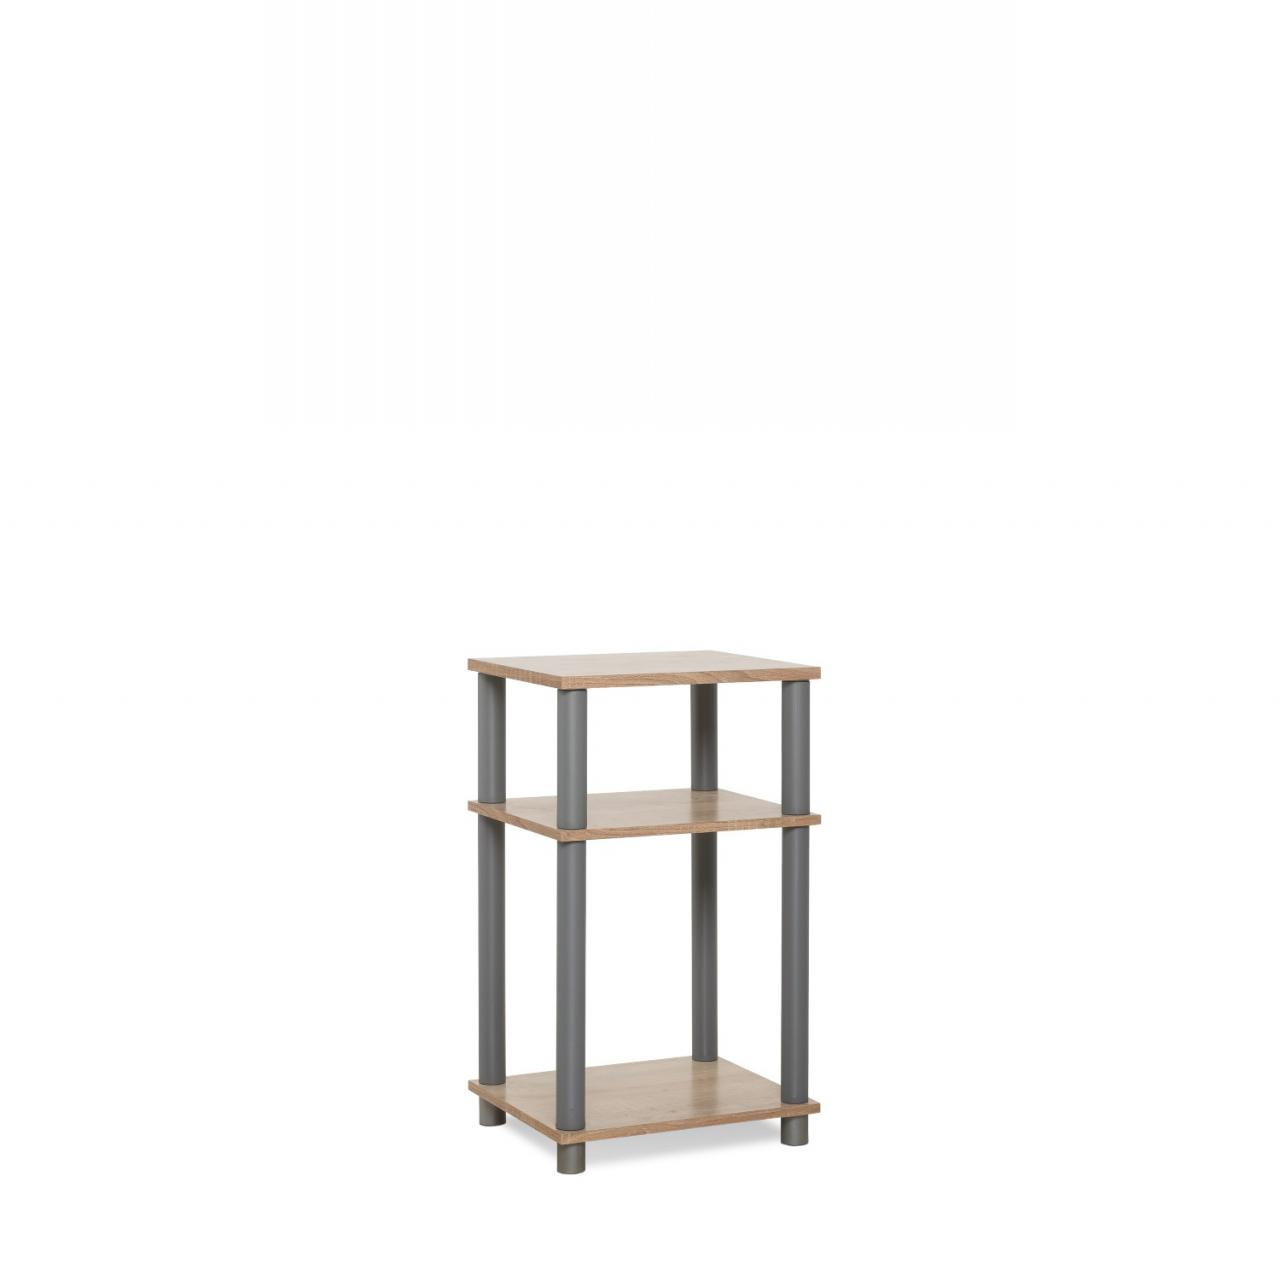 TV-Rack Tubi 3